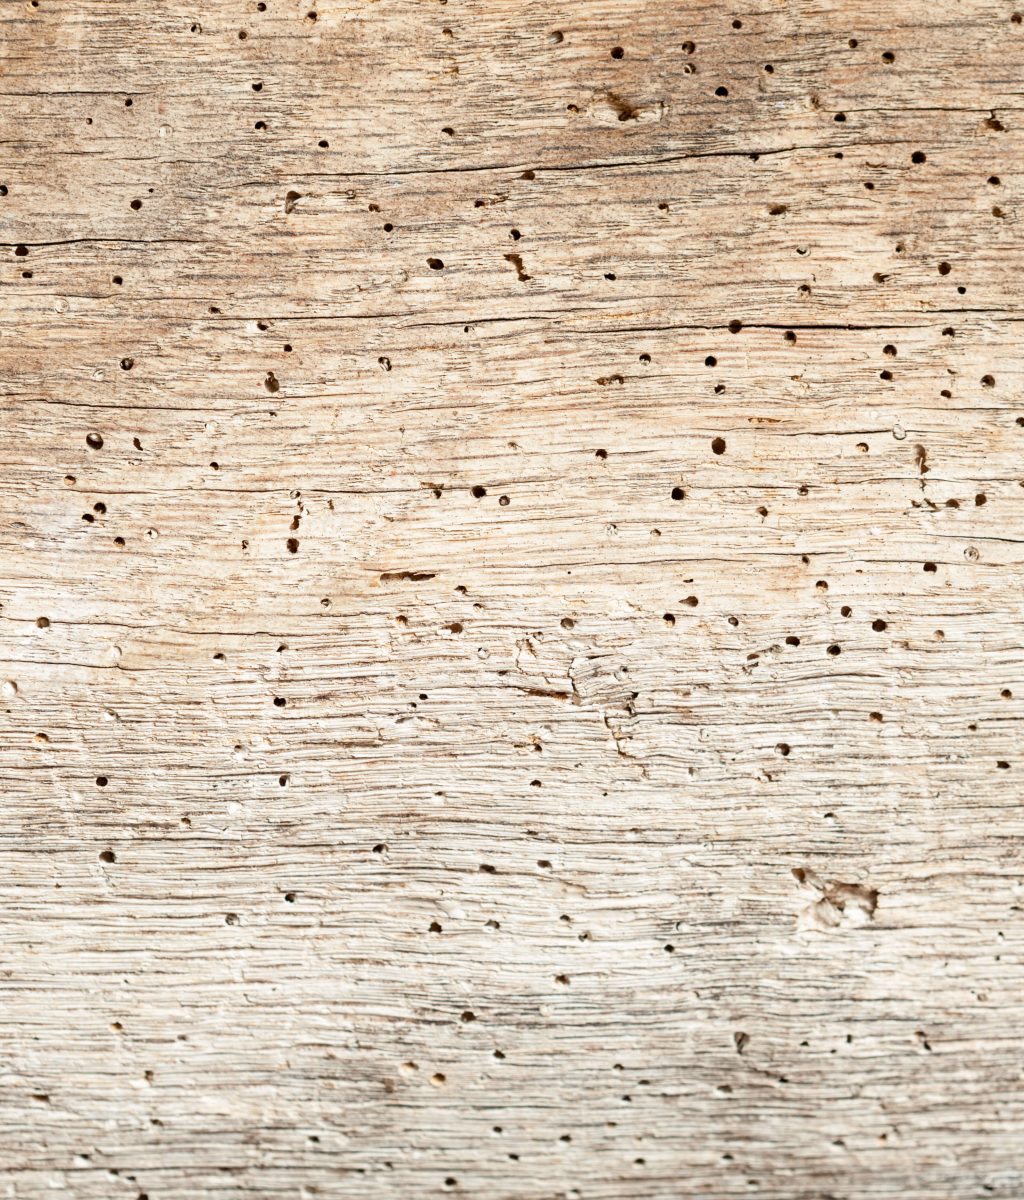 woodworm pic 3